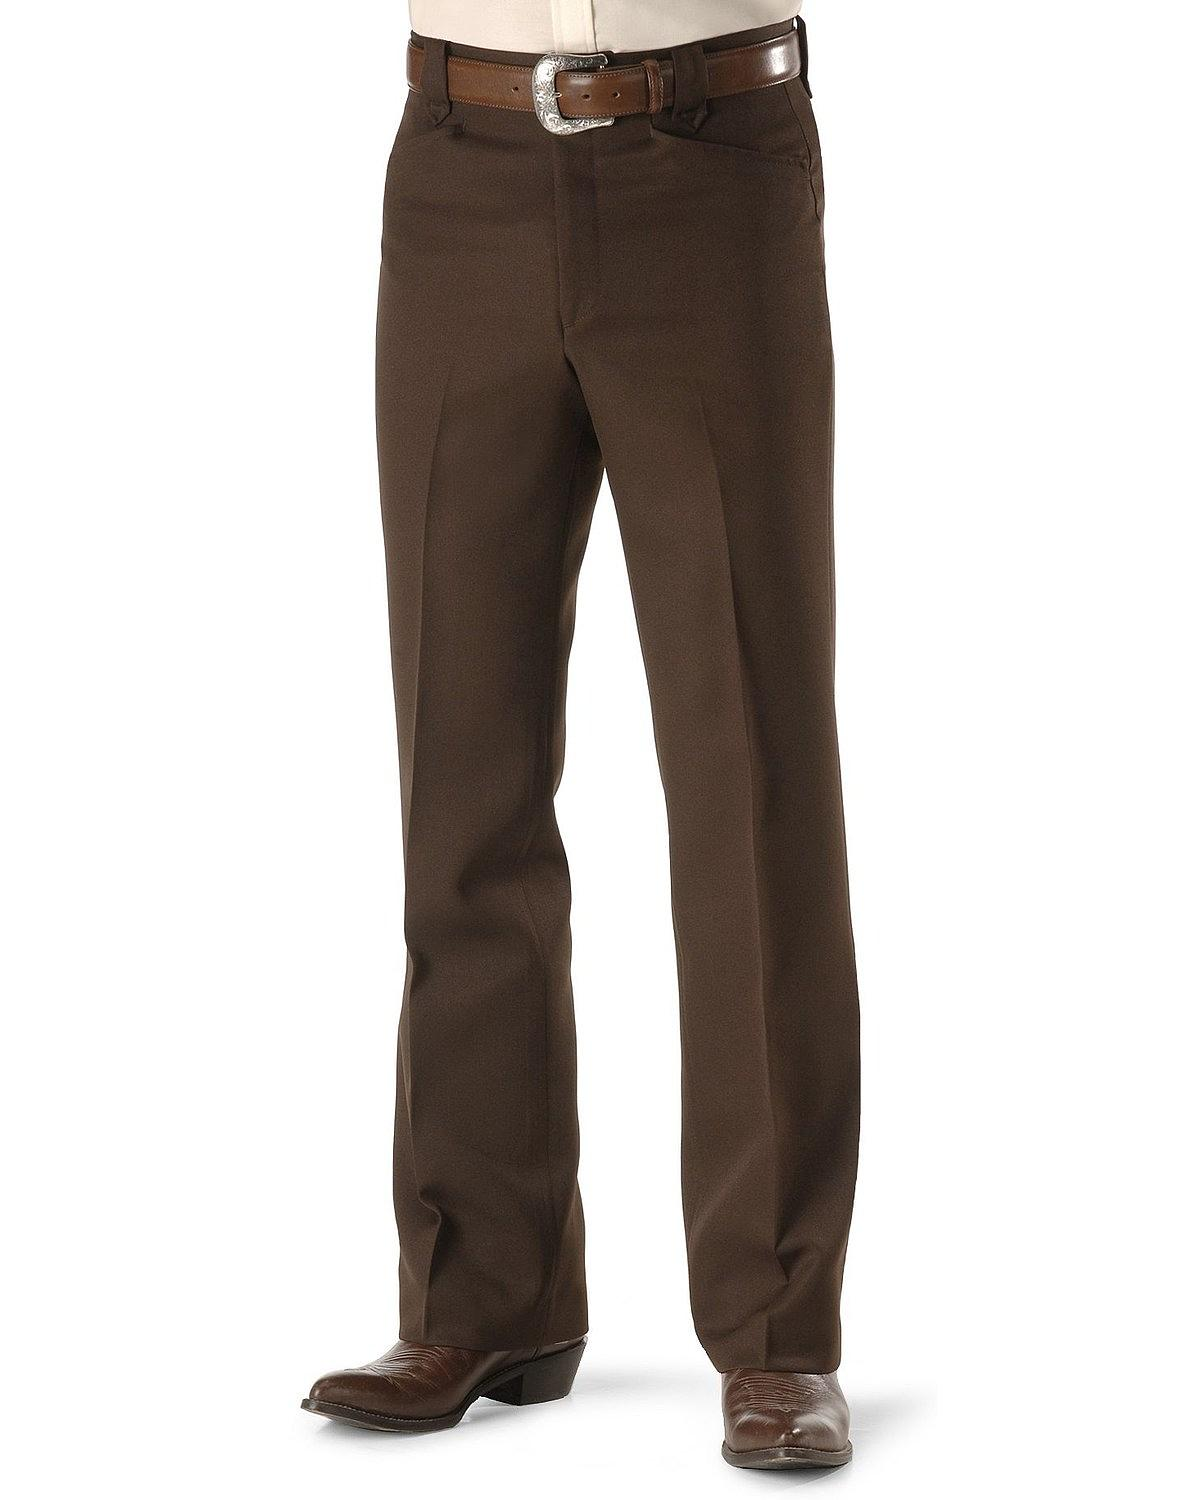 What Shoes To Wear With Slacks